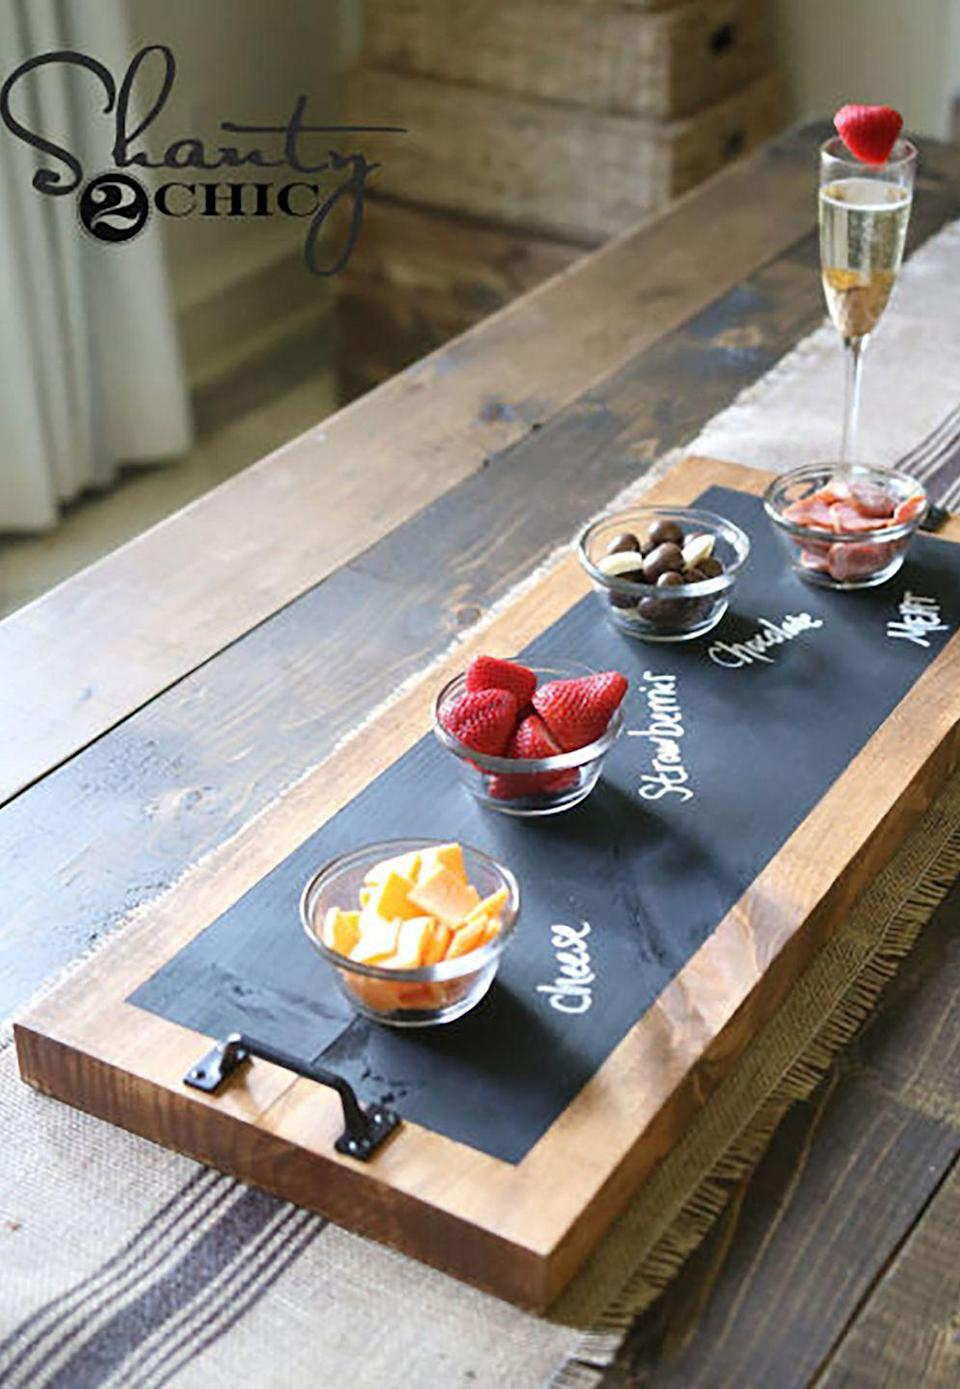 """<p>Let the ladies of Shanty2Chic walk you through a tutorial for this easy-to-make chalkboard serving tray,the perfect gift for a friend who is always entertaining.</p><p><strong>Get the tutorial at <a href=""""http://www.shanty-2-chic.com/2016/08/diy-chalkboard-serving-tray-tutorial-youtube-video.html"""" rel=""""nofollow noopener"""" target=""""_blank"""" data-ylk=""""slk:Shanty2Chic"""" class=""""link rapid-noclick-resp"""">Shanty2Chic</a>.</strong></p><p><strong><a class=""""link rapid-noclick-resp"""" href=""""https://go.redirectingat.com?id=74968X1596630&url=https%3A%2F%2Fwww.homedepot.com%2Fb%2FLumber-Composites-Framing-Lumber-Studs%2F12%2FN-5yc1vZc3tcZ1z0ywx1&sref=https%3A%2F%2Fwww.countryliving.com%2Fdiy-crafts%2Ftips%2Fg645%2Fcrafty-christmas-presents-ideas%2F"""" rel=""""nofollow noopener"""" target=""""_blank"""" data-ylk=""""slk:SHOP BOARDS"""">SHOP BOARDS</a><br></strong></p>"""